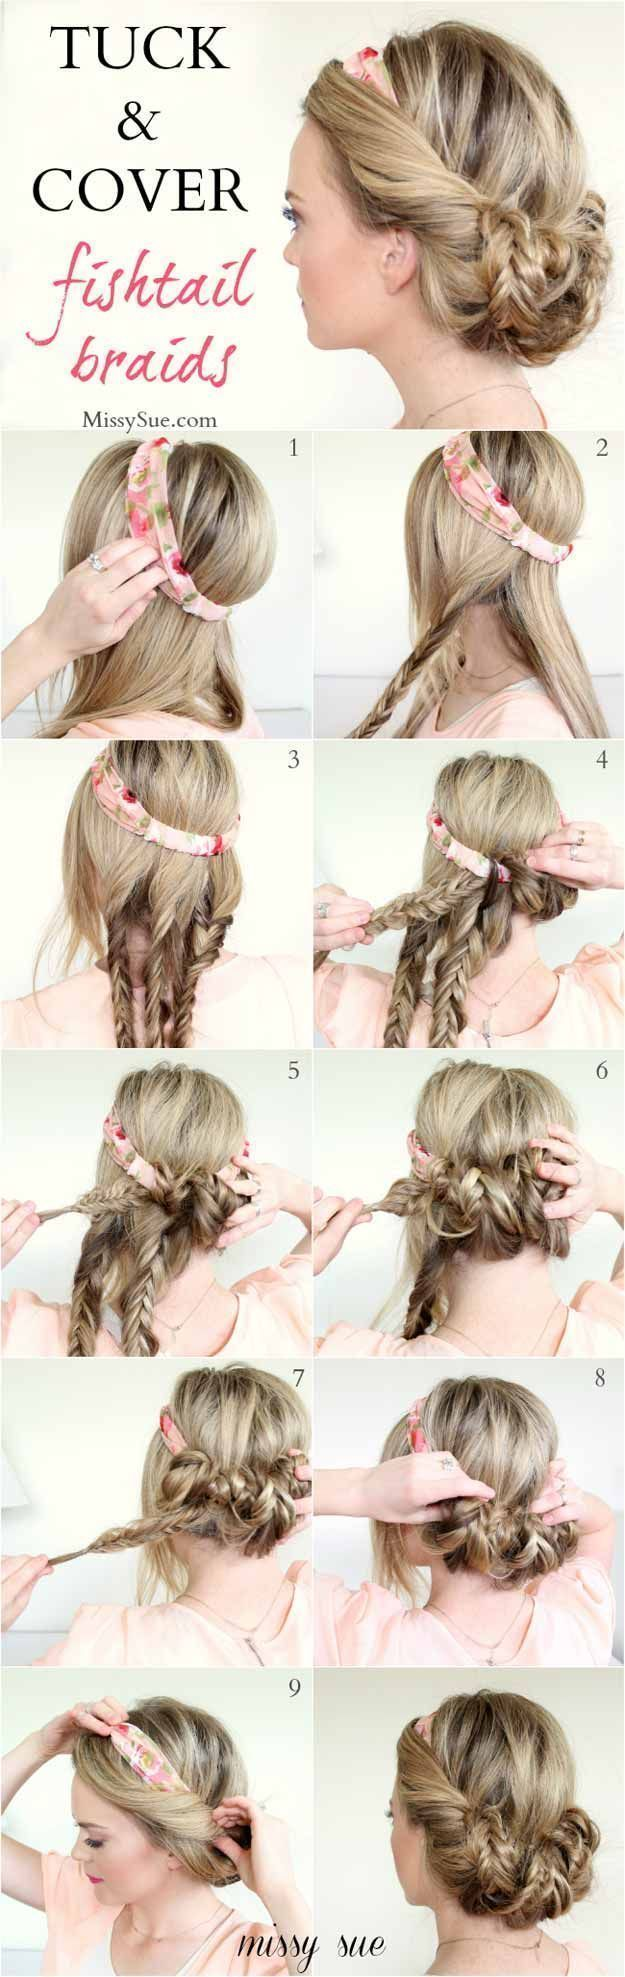 Quick and easy hairstyles for school cute hairstyles you can do